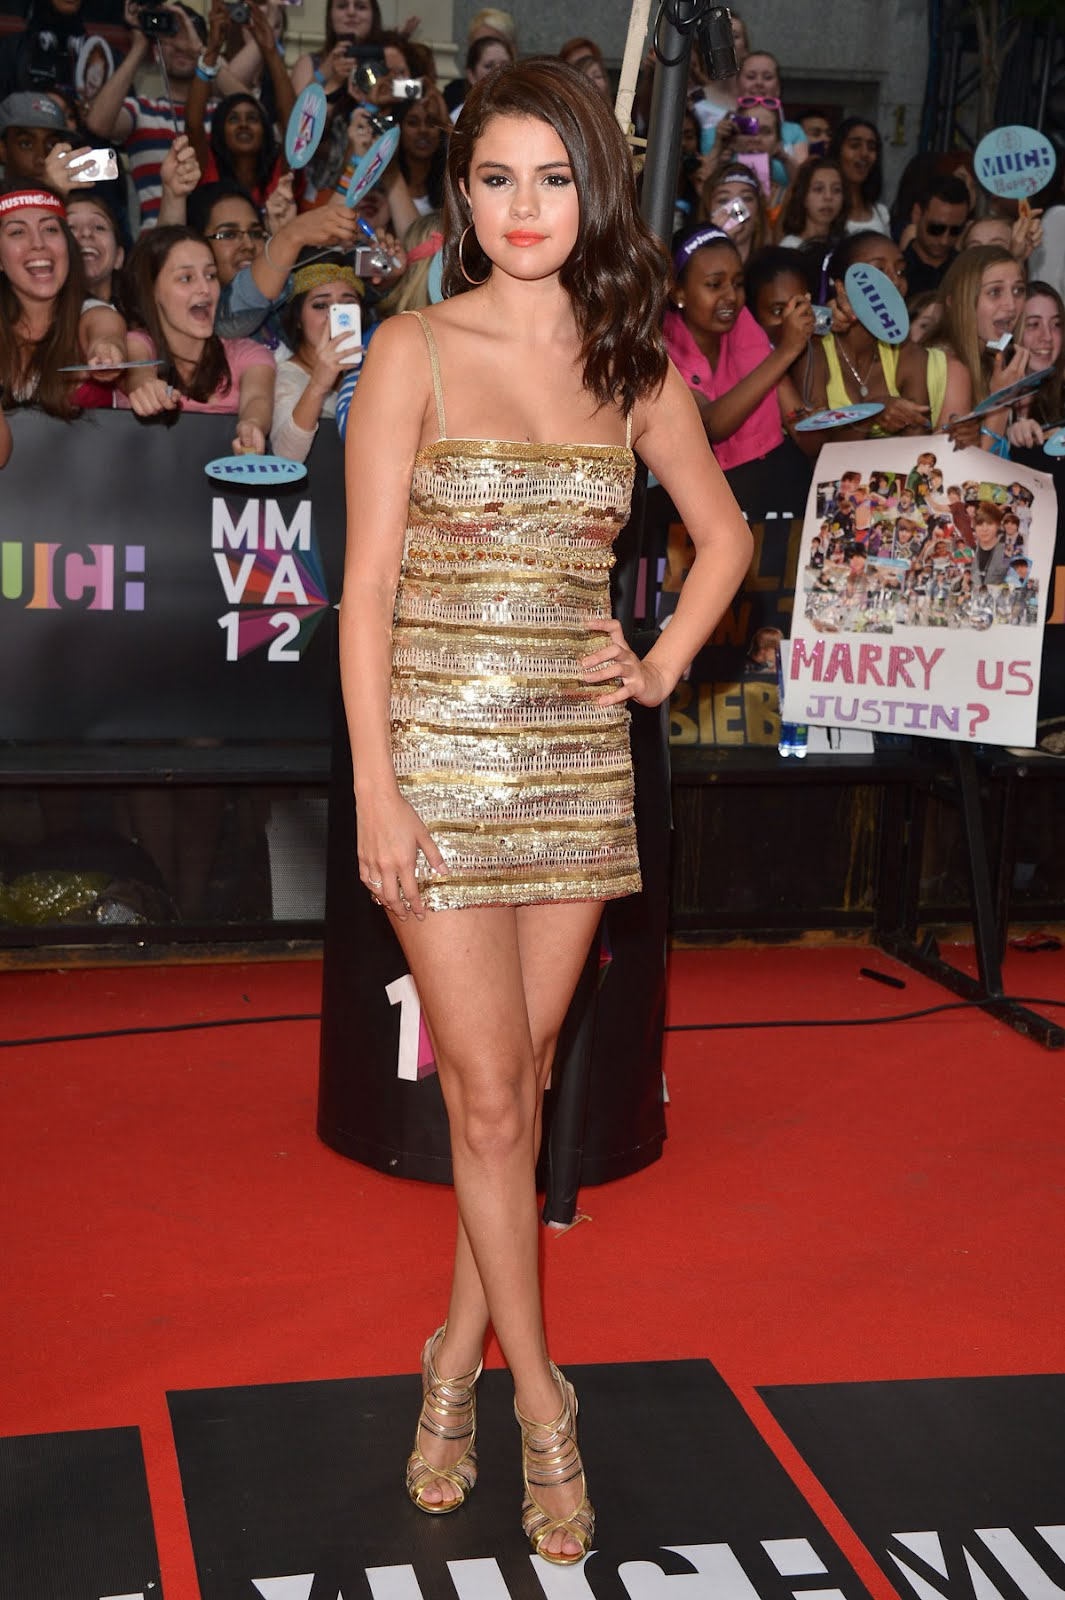 http://4.bp.blogspot.com/-CZxdSDAnW8I/T-NjTd_xdGI/AAAAAAAAHX4/MF_kt_5FQBo/s1600/SELENA-GOMEZ-at-2012-MuchMusic-Video-Awards-in-Toronto-3.jpg